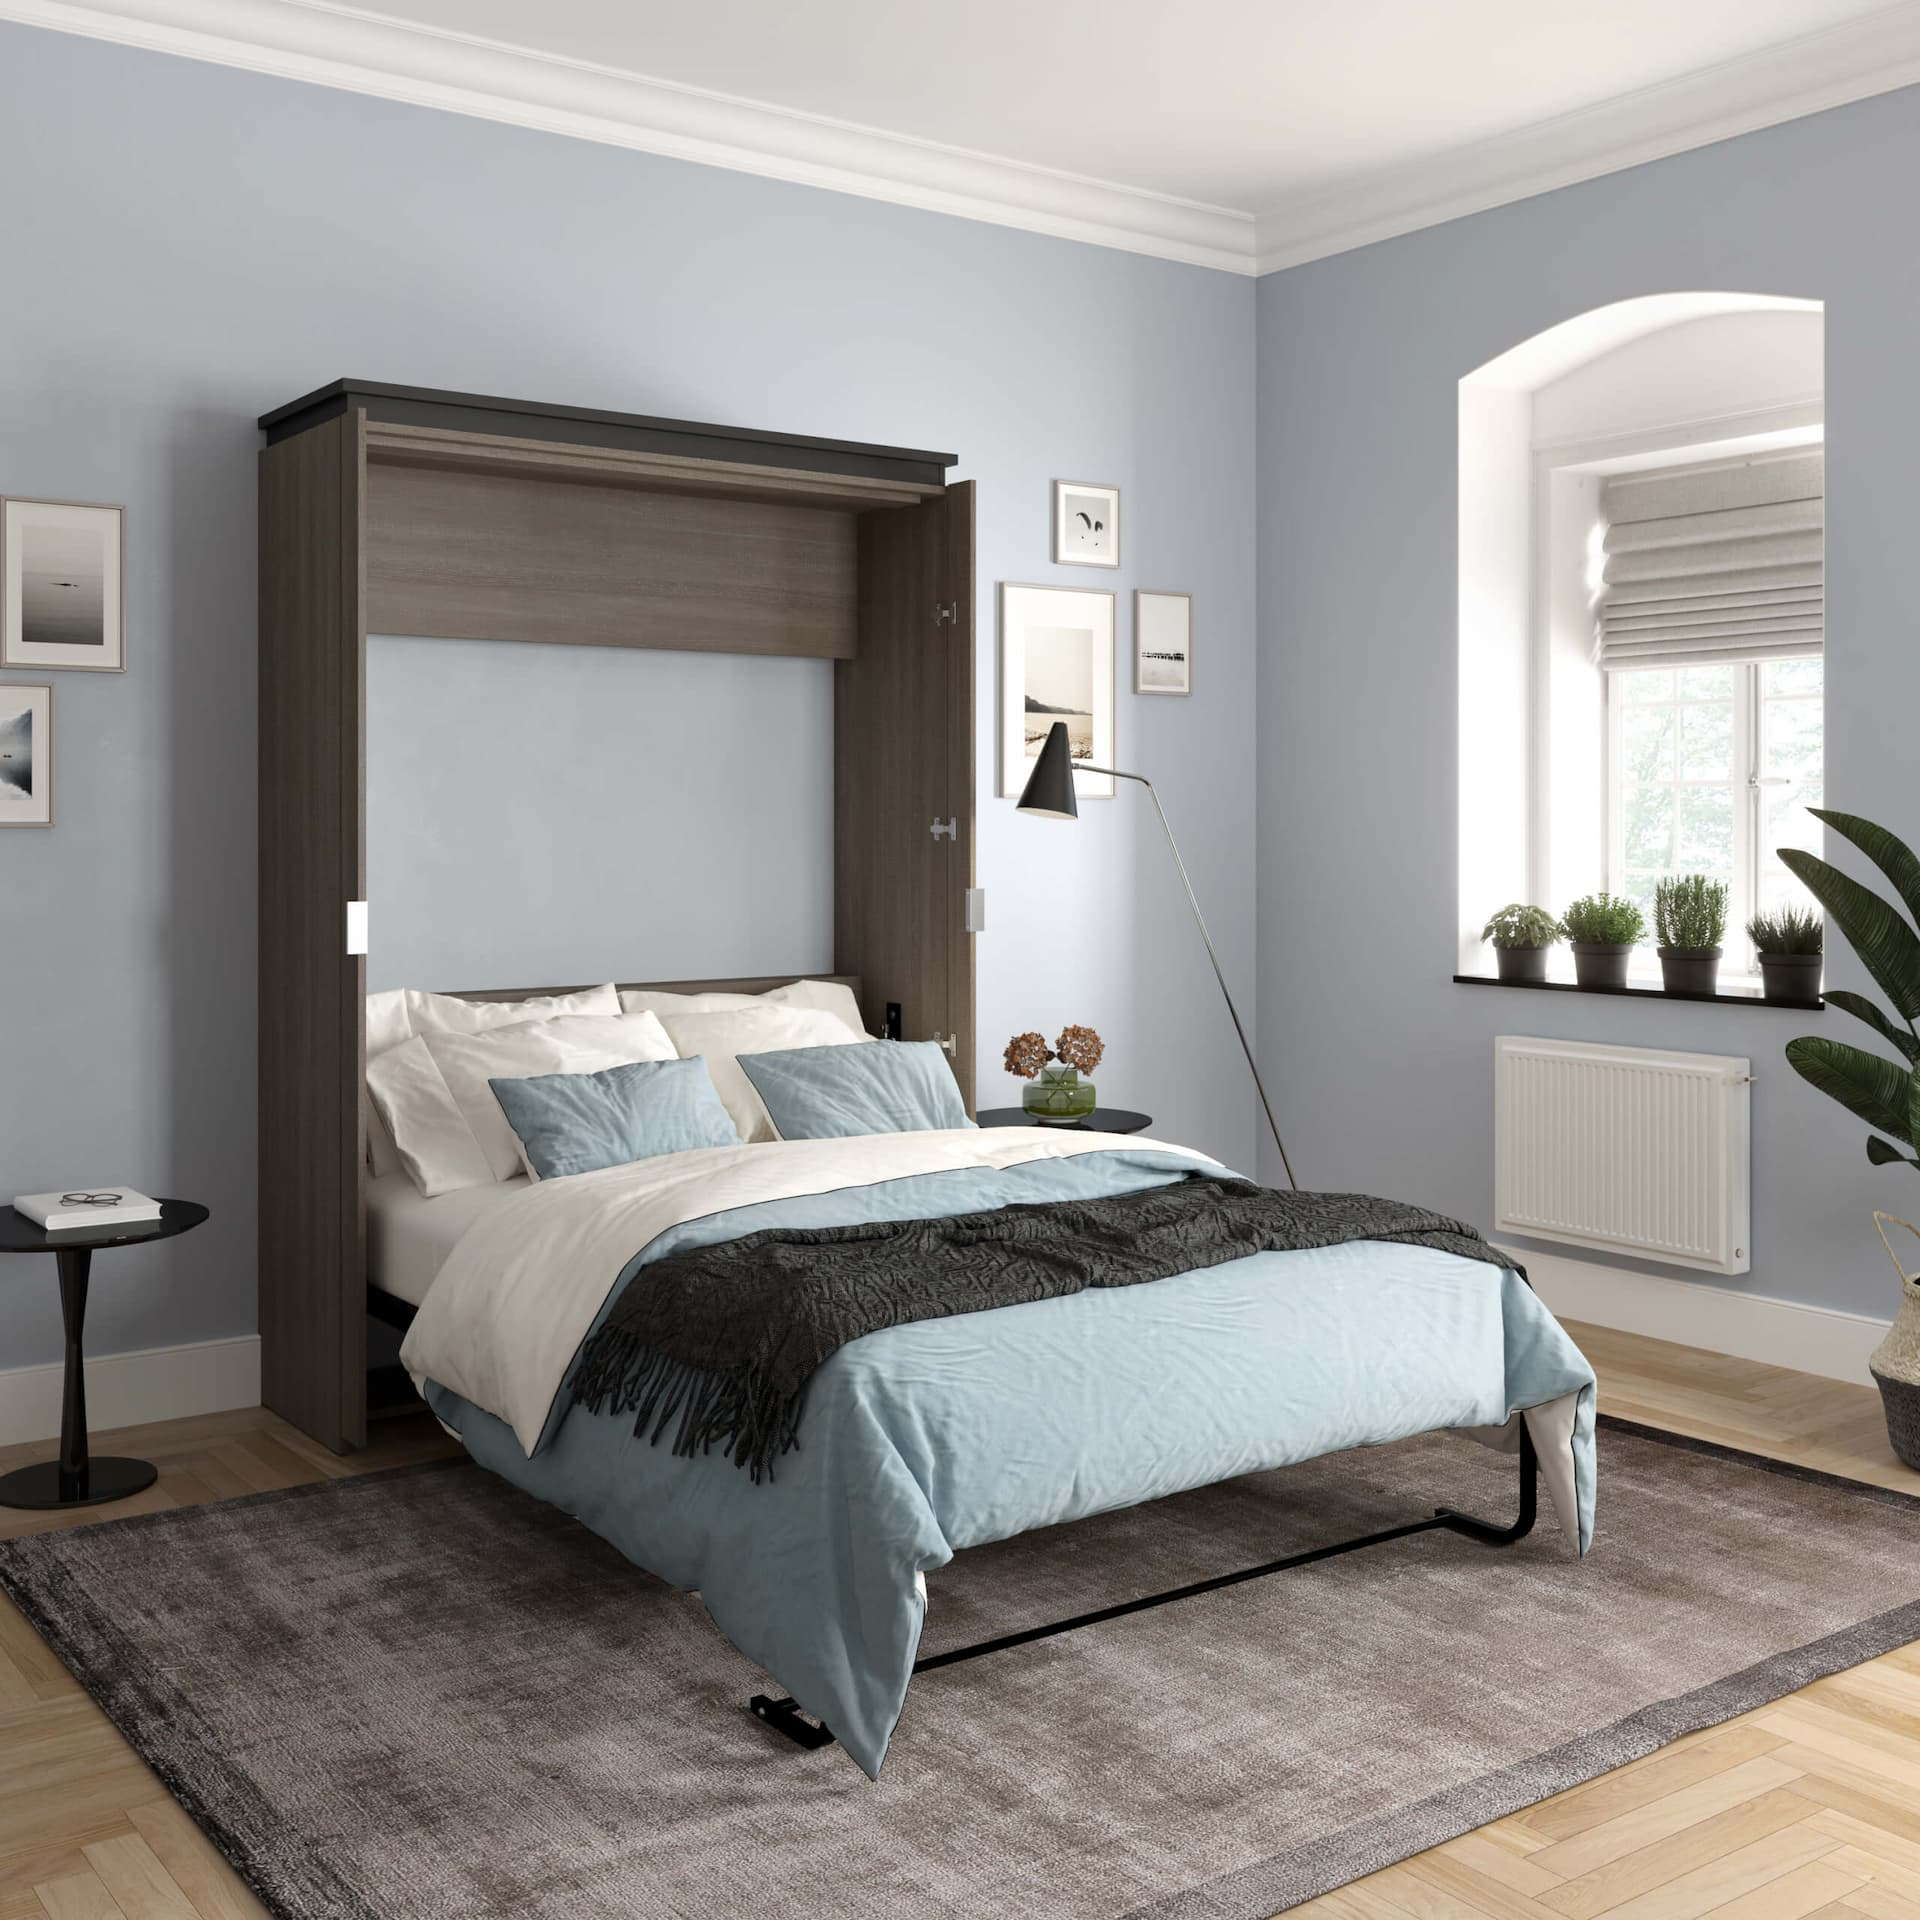 Sleep Well with a Multifunctional and Space-Saving Murphy Bed